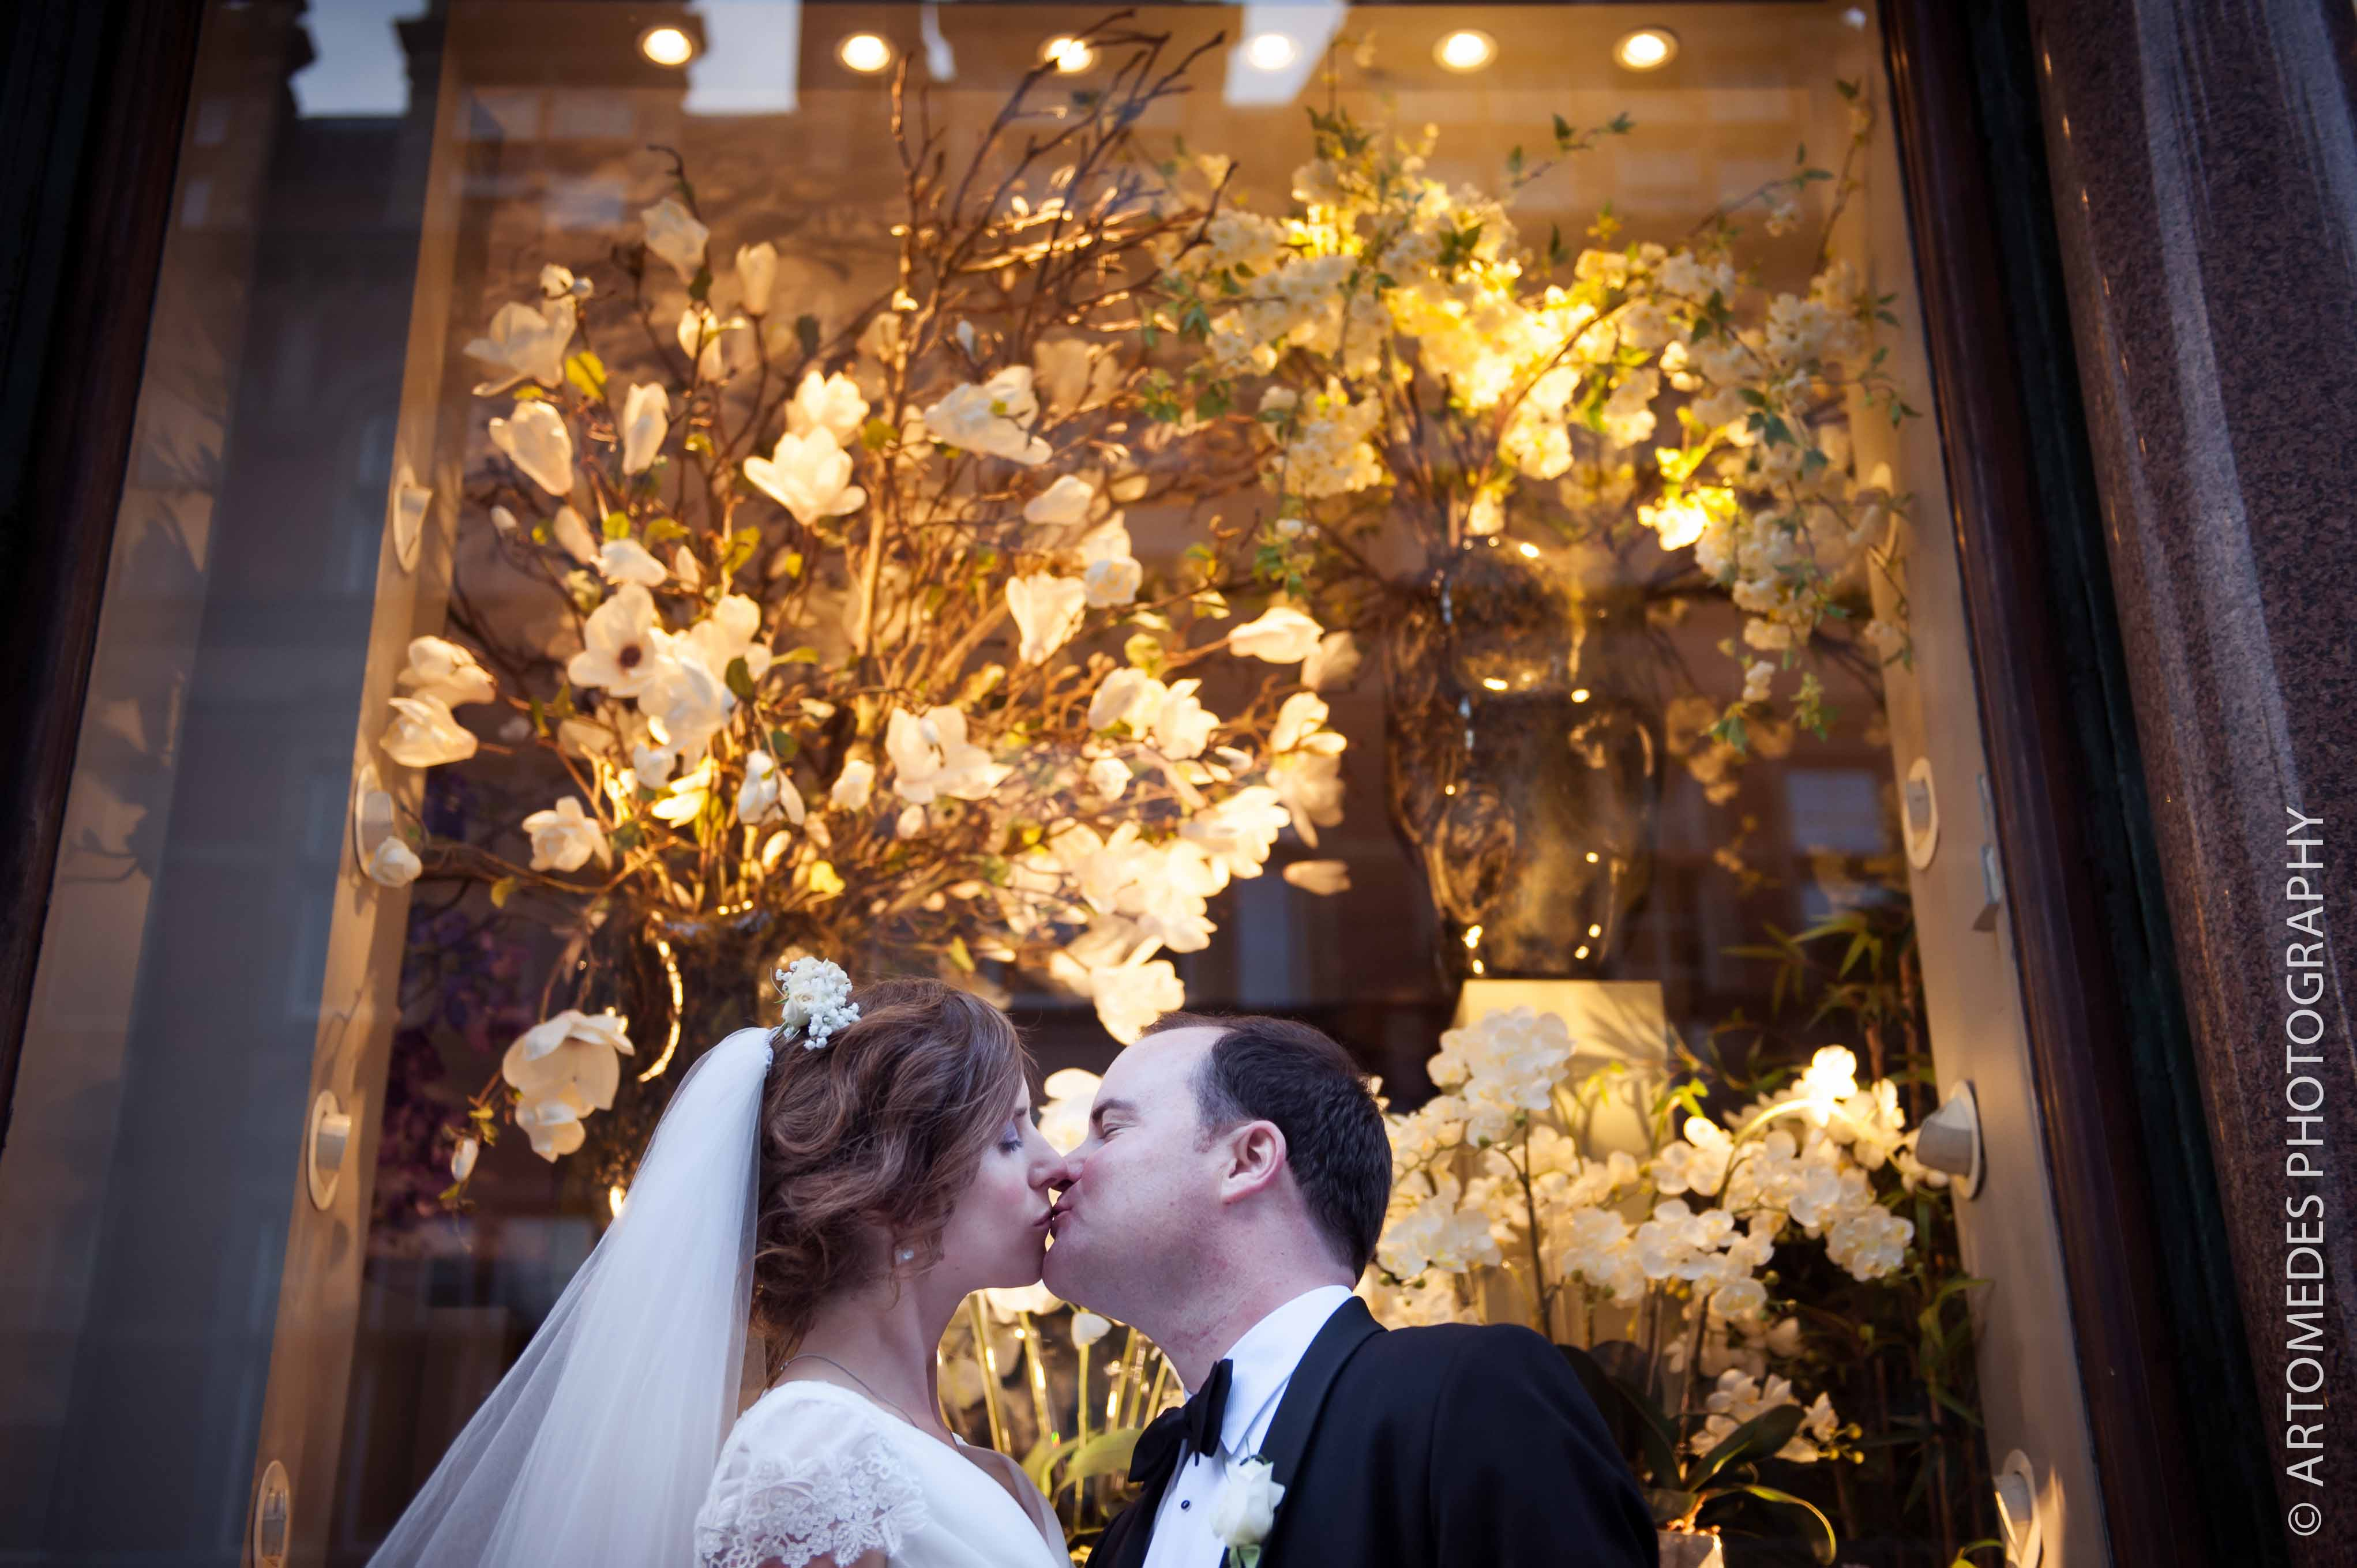 Wedding Photography at Le Méridien Piccadilly - here's a quick shot from Elizabeth & Ryan's recent wedding at Le Méridien Piccadilly